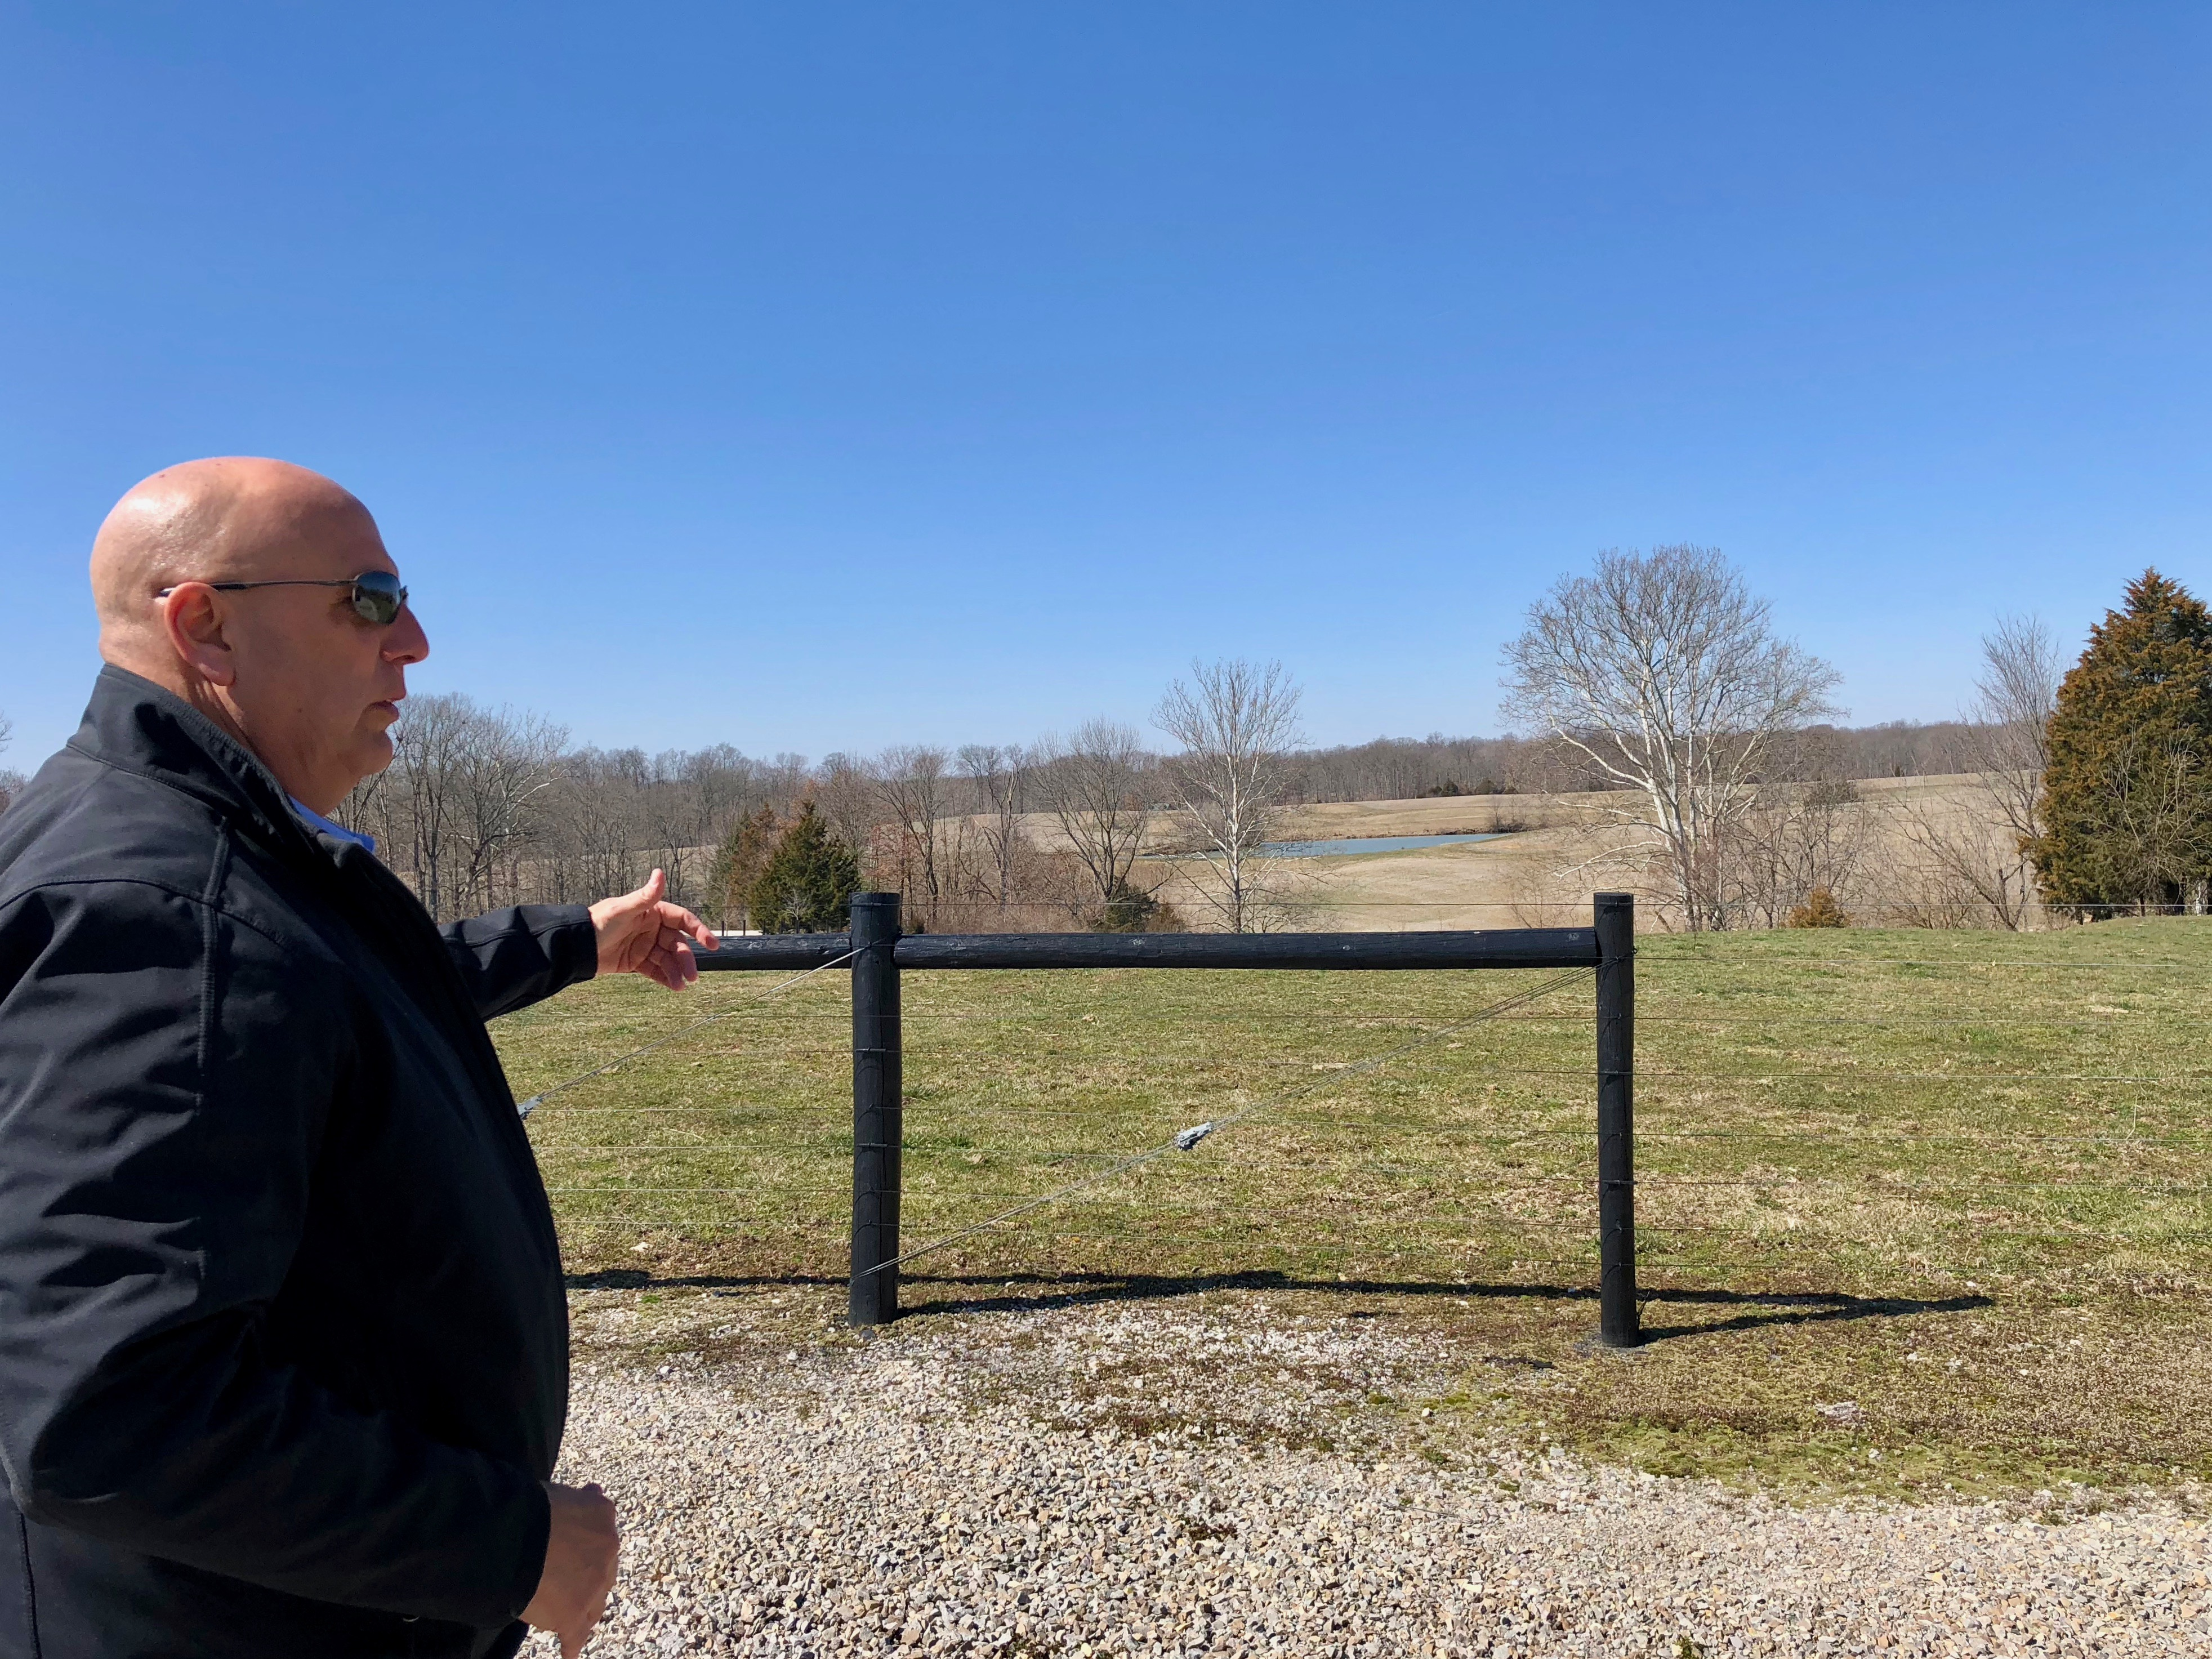 Keith Marsh, academic director at Indiana Agriculture and Technology School, explains aspects of the farm's hands-on learning plans.